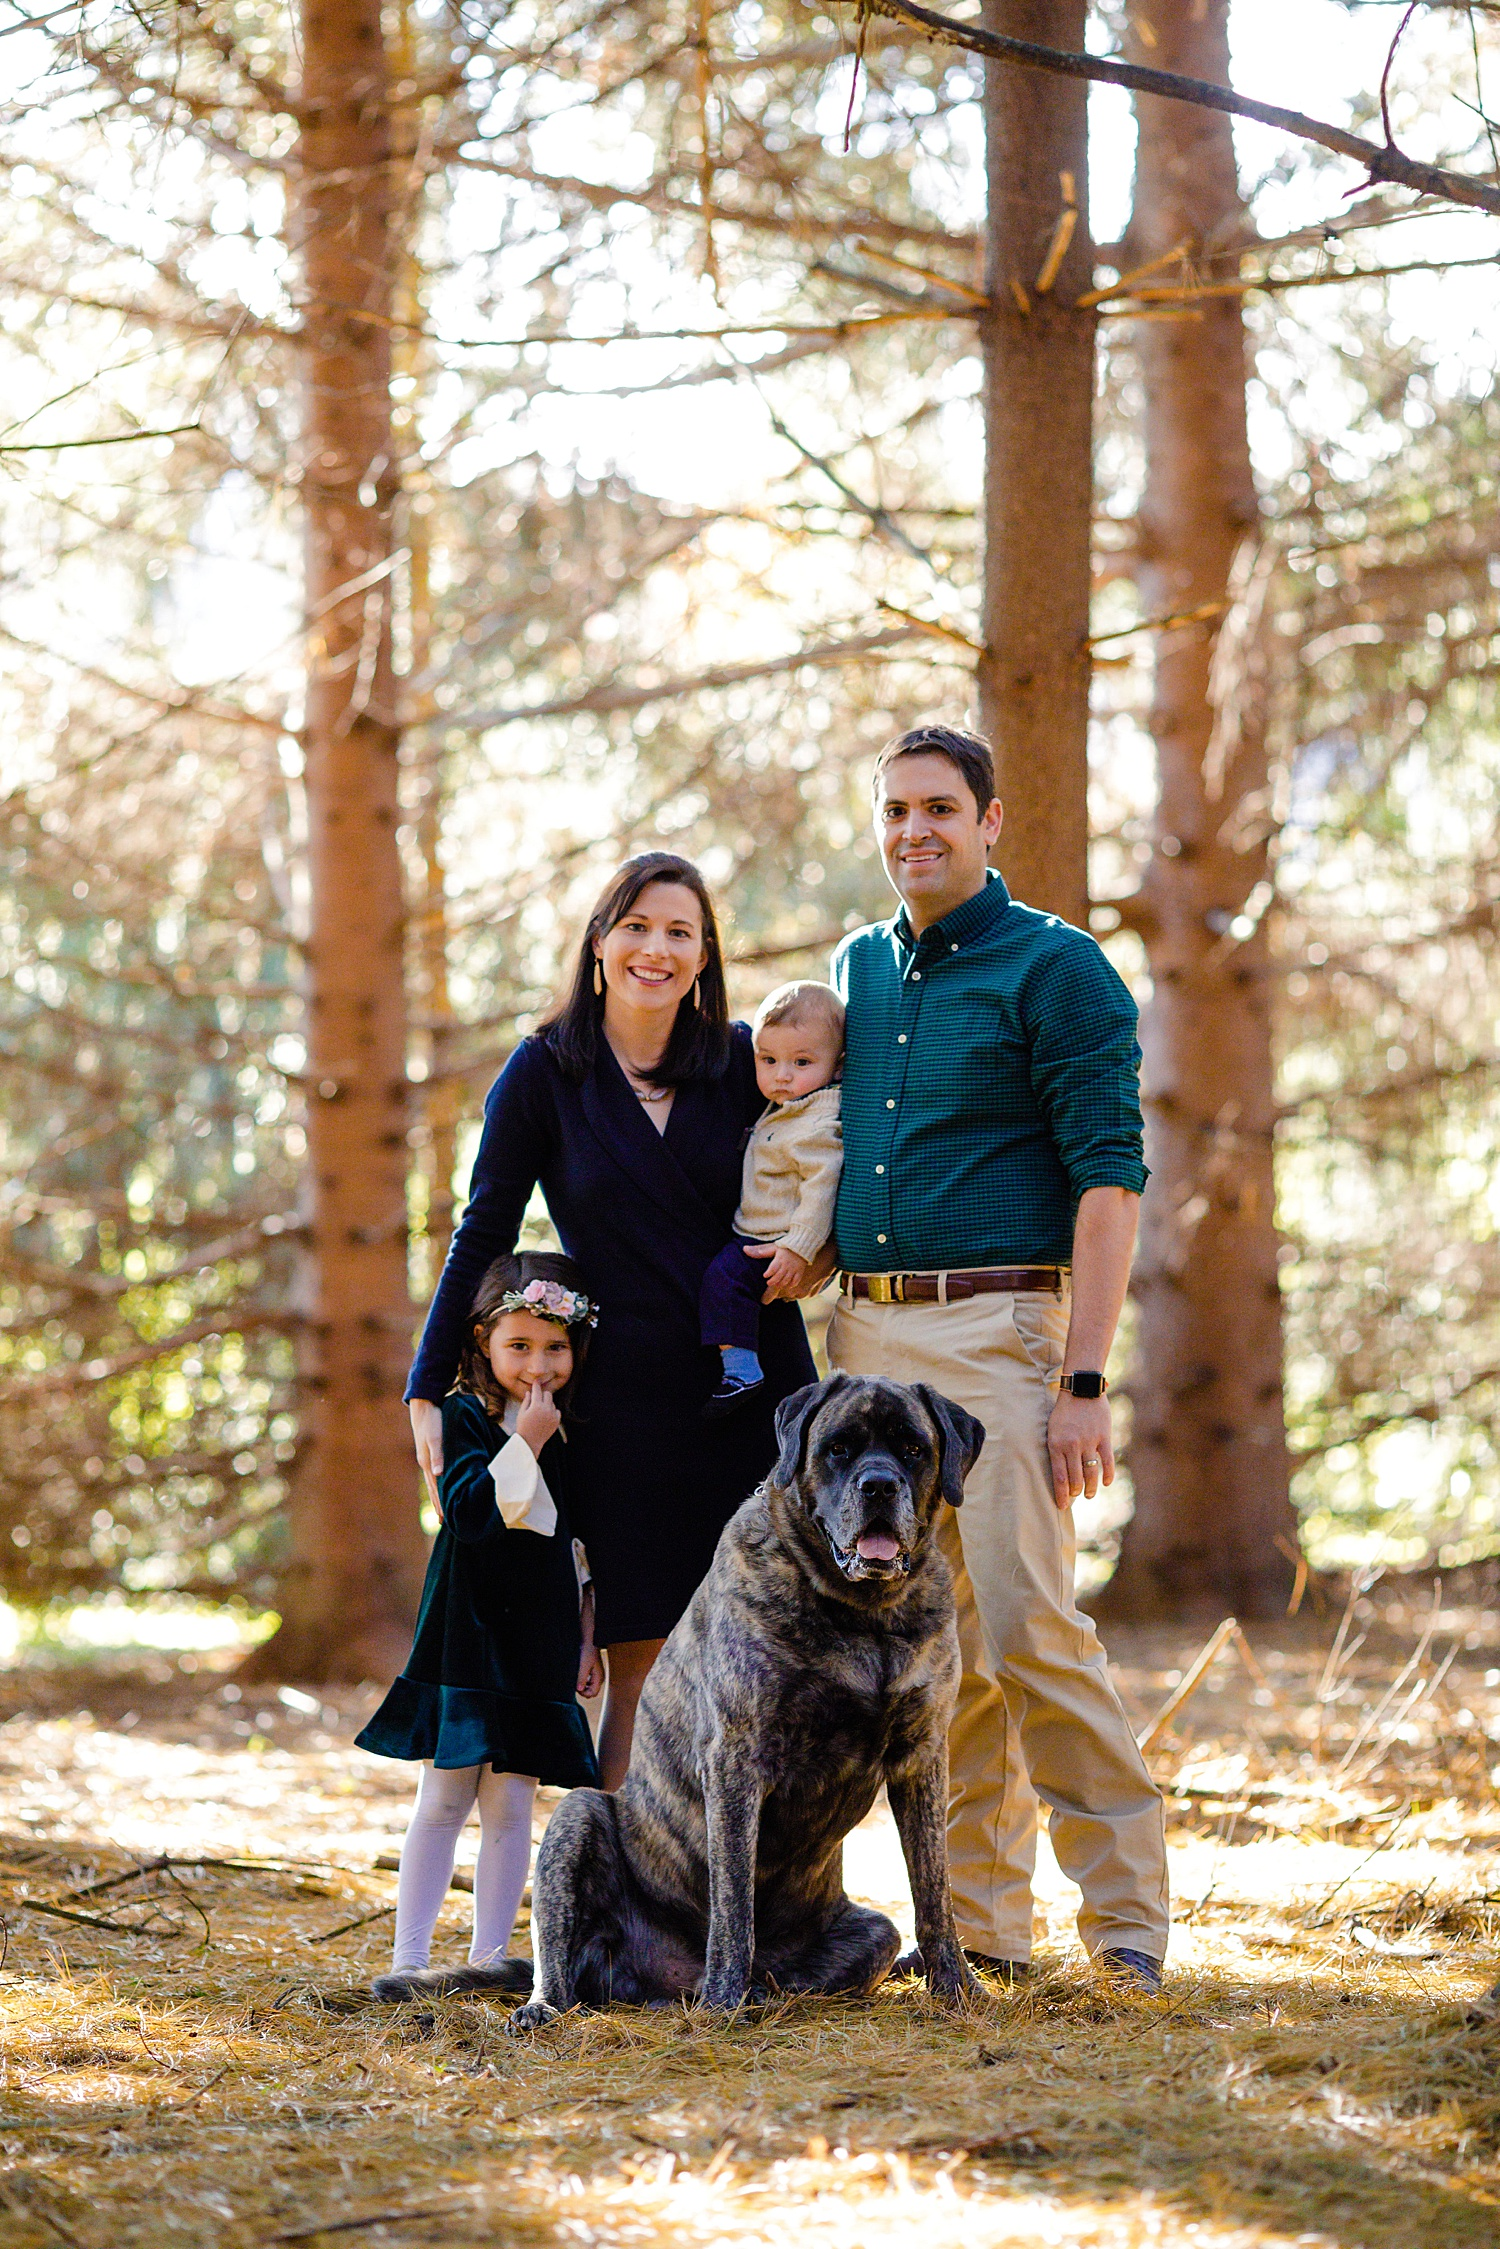 Wyomissing Park Berks County Pennsylvania family child photoshoot portrait photographer